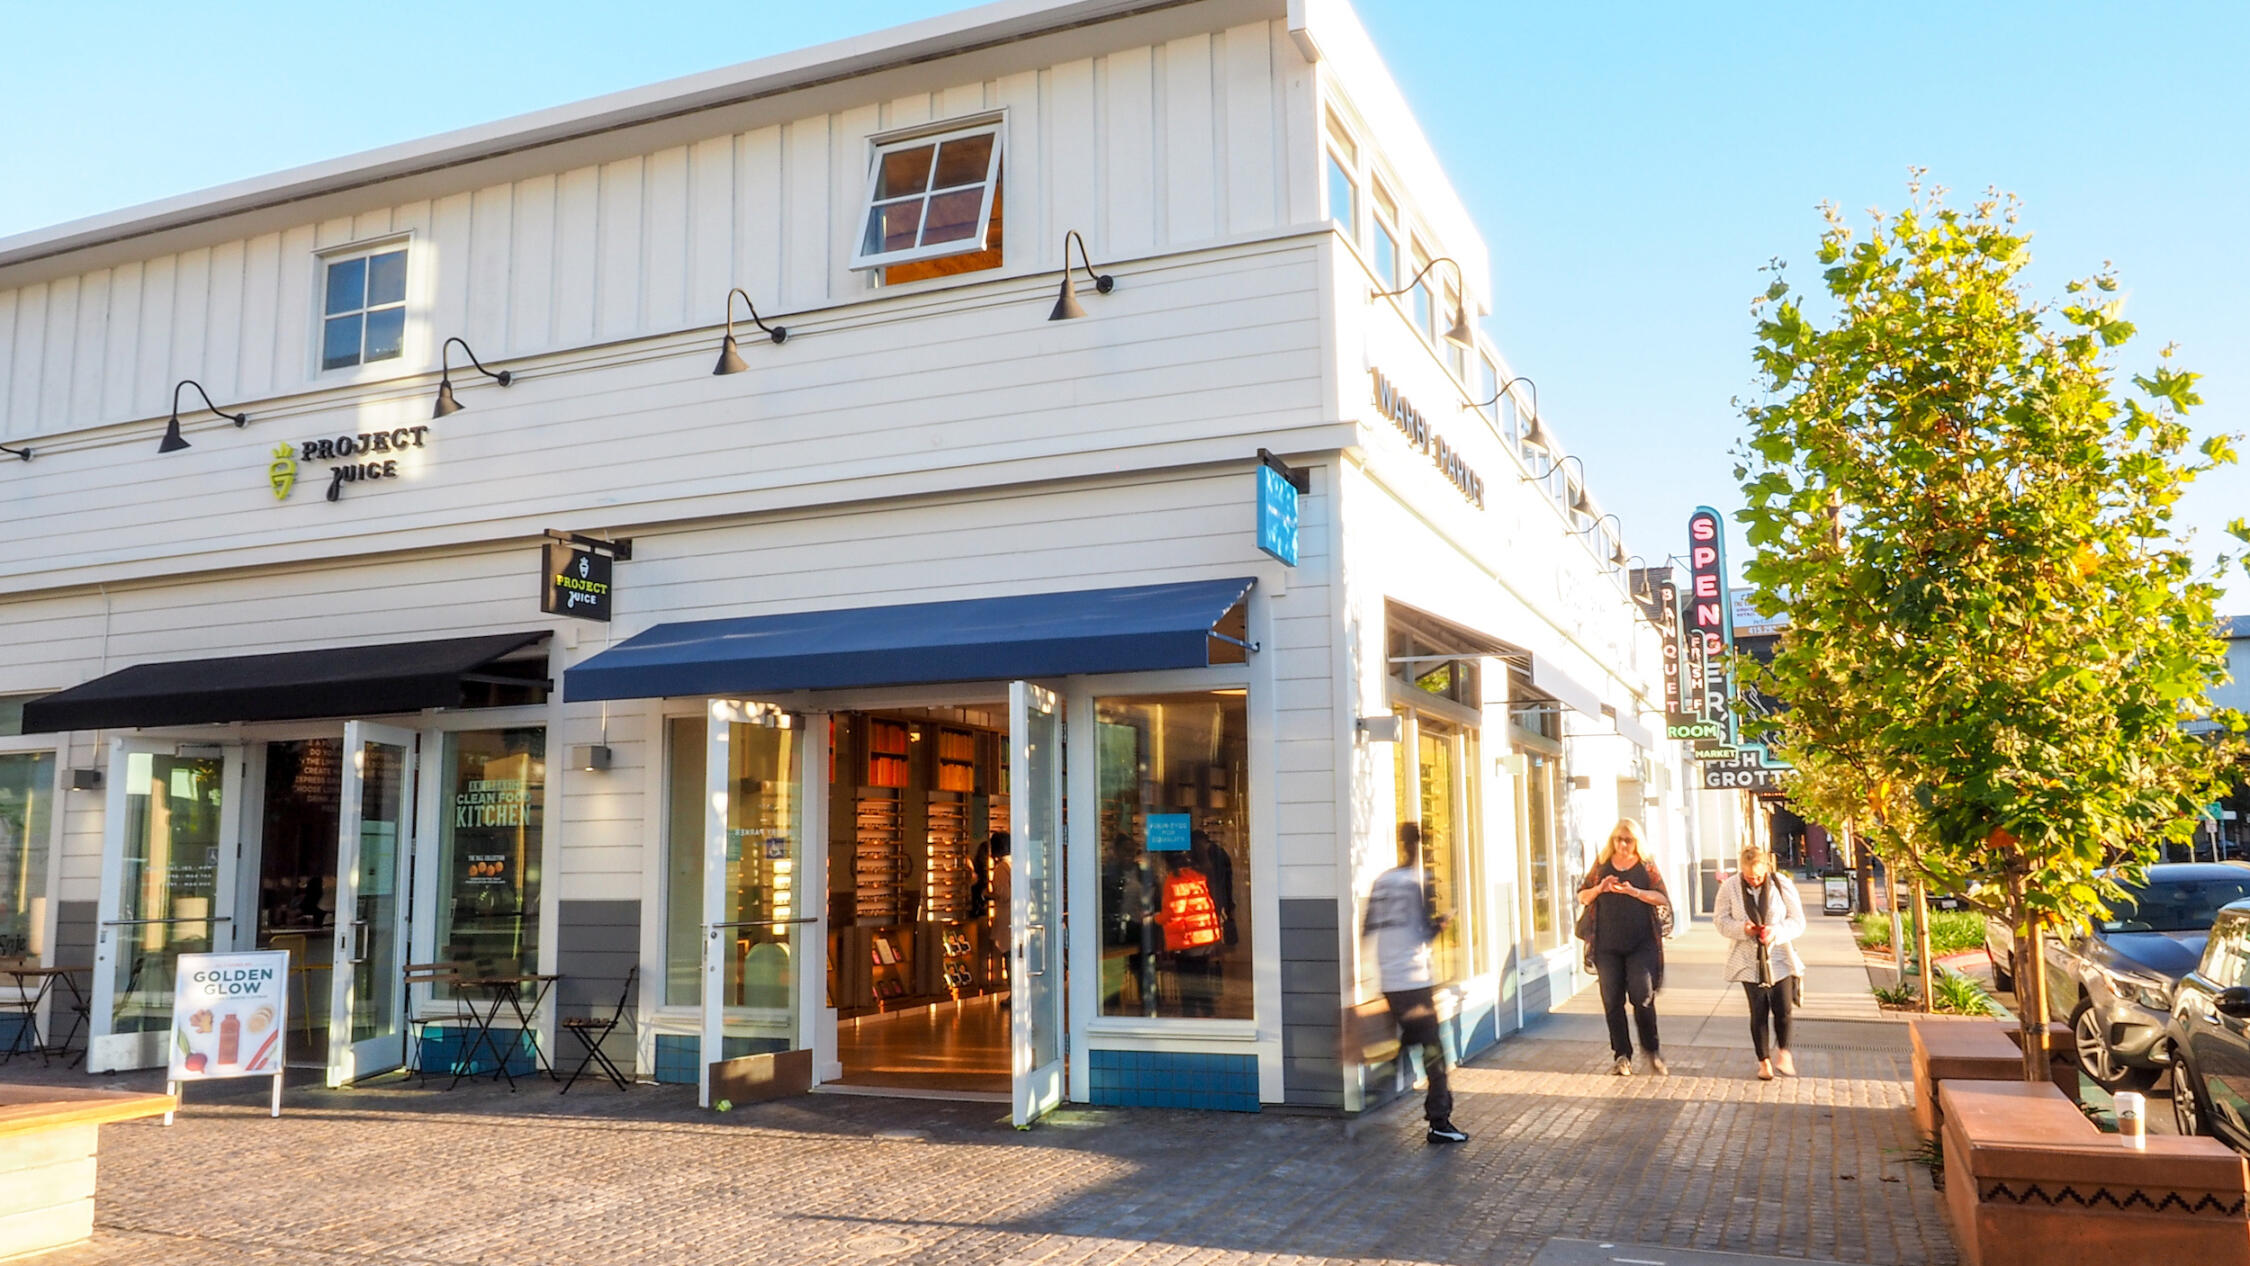 Fourth Street Berkeley retail store facades with pedestrians on sidewalks